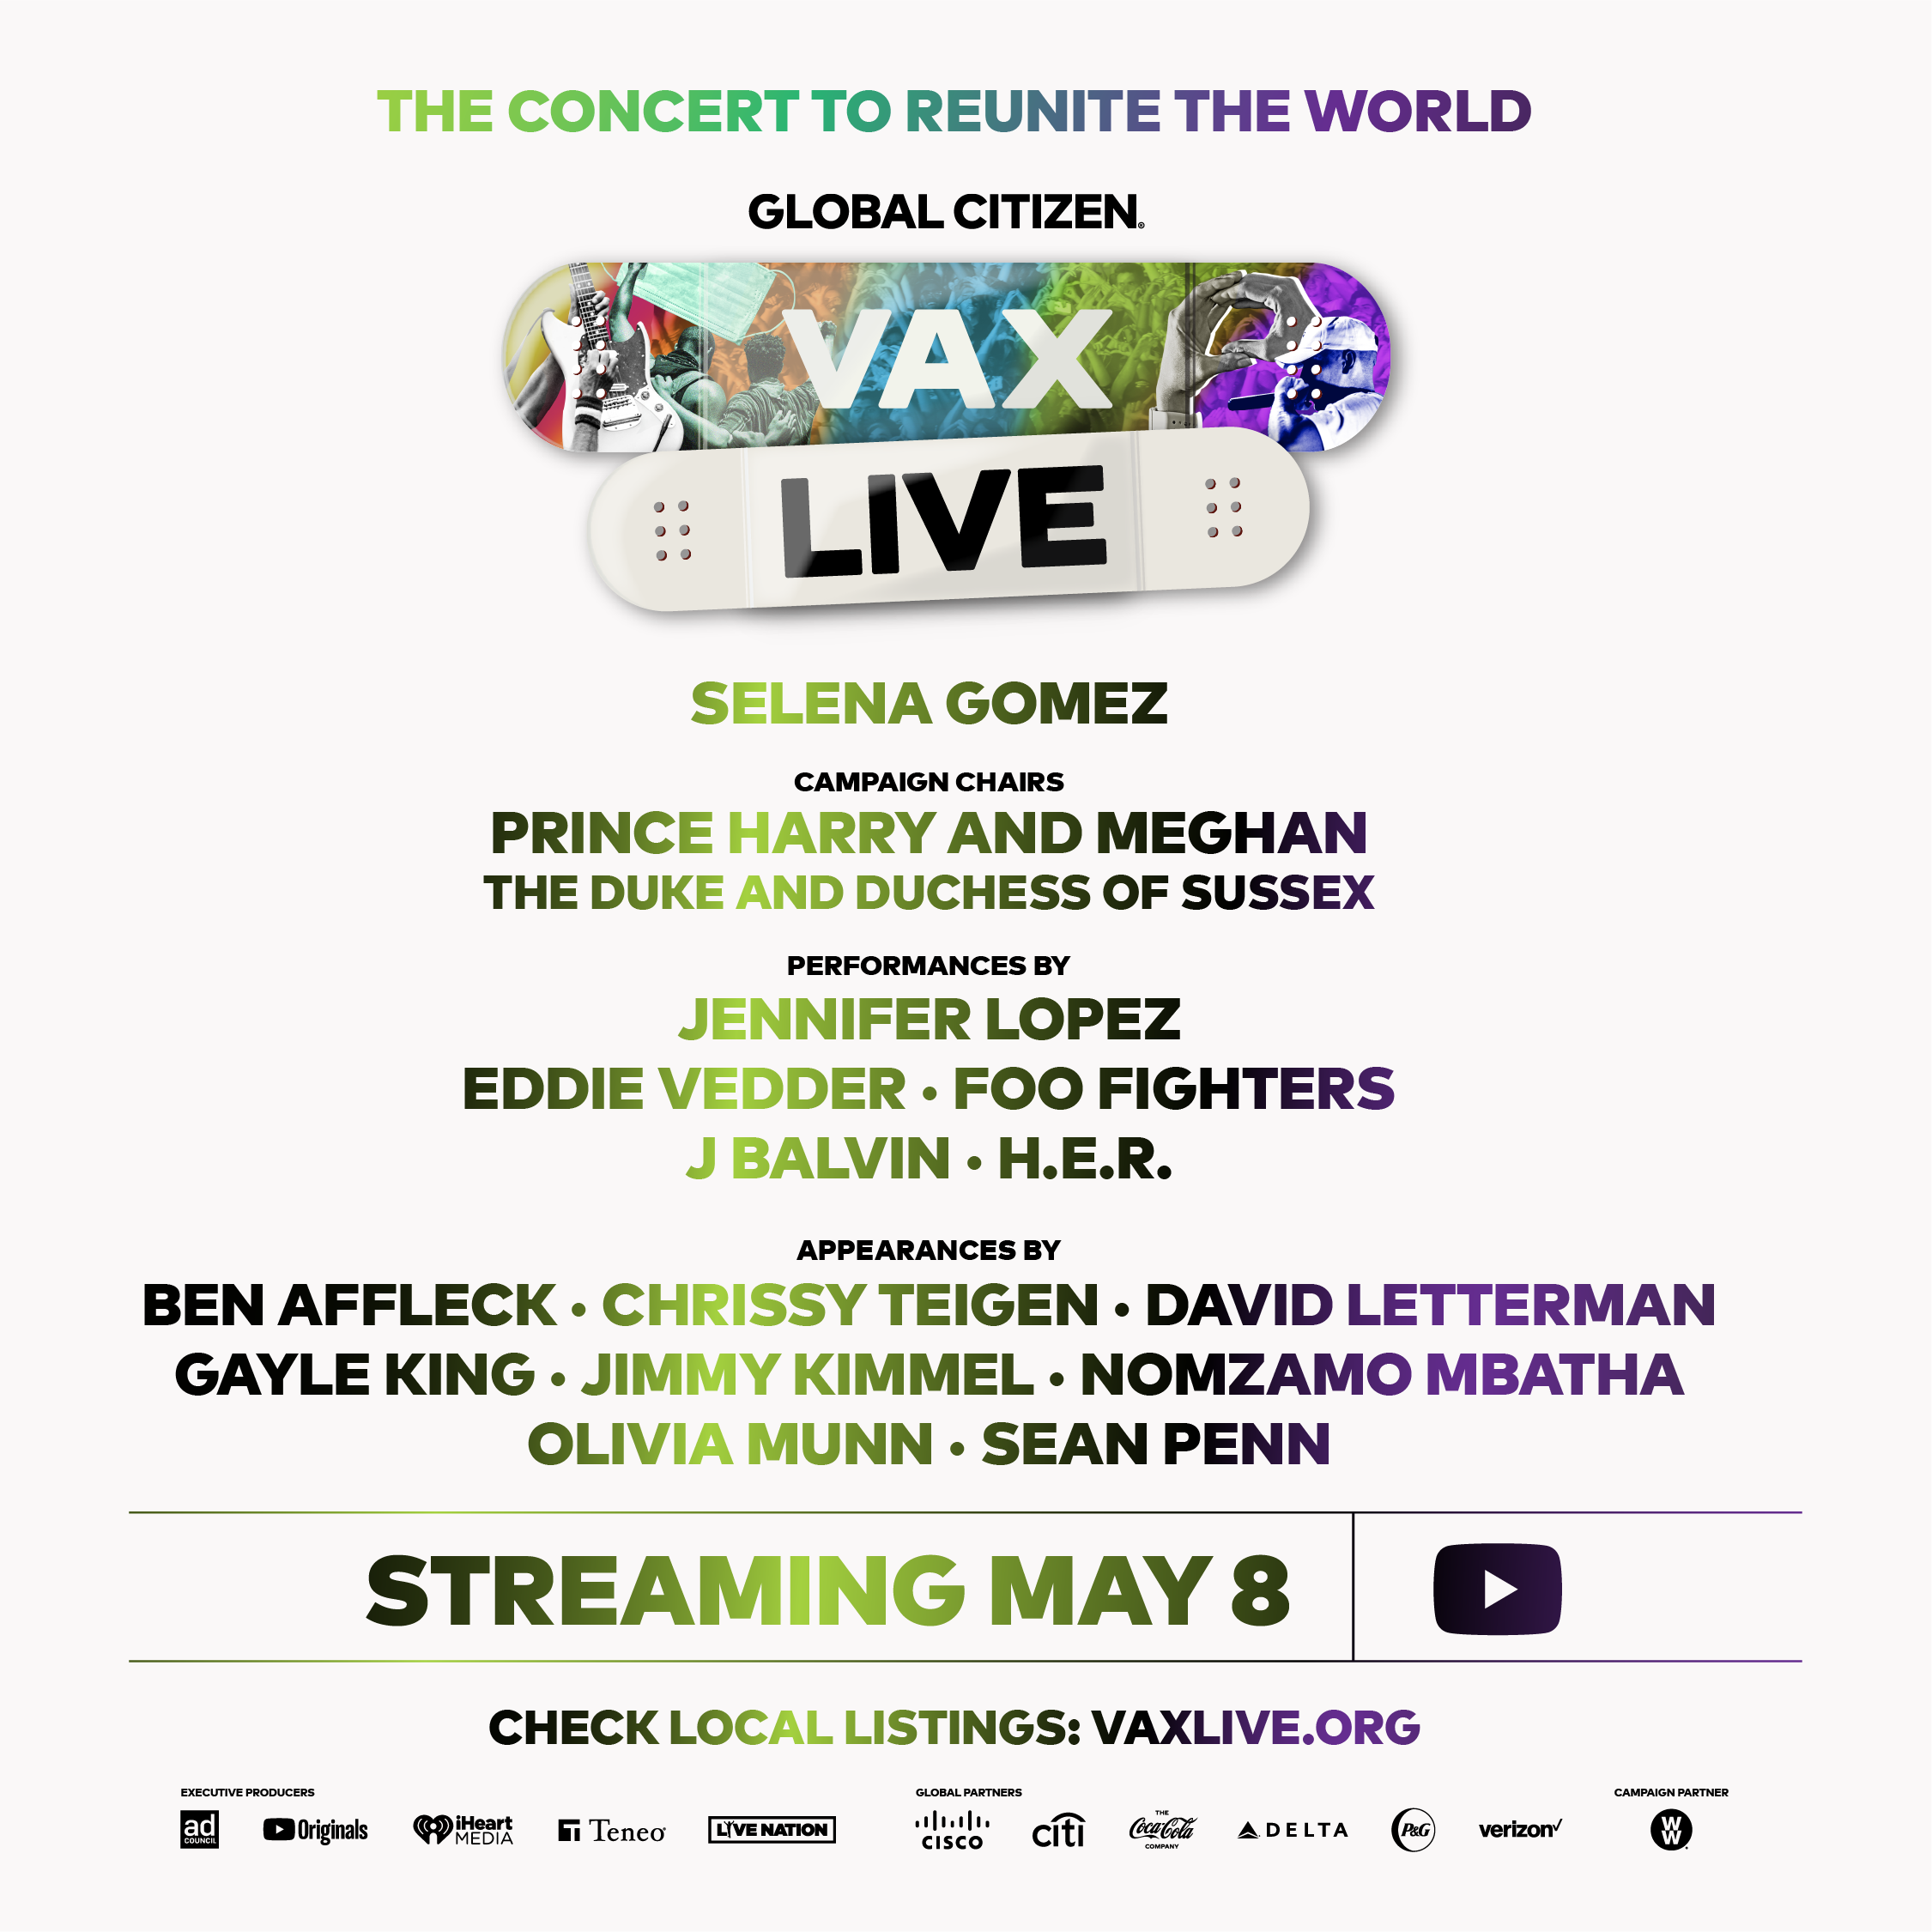 VaxLive_GlobalTuneInAdmats_May8_IG_Post_EN.png